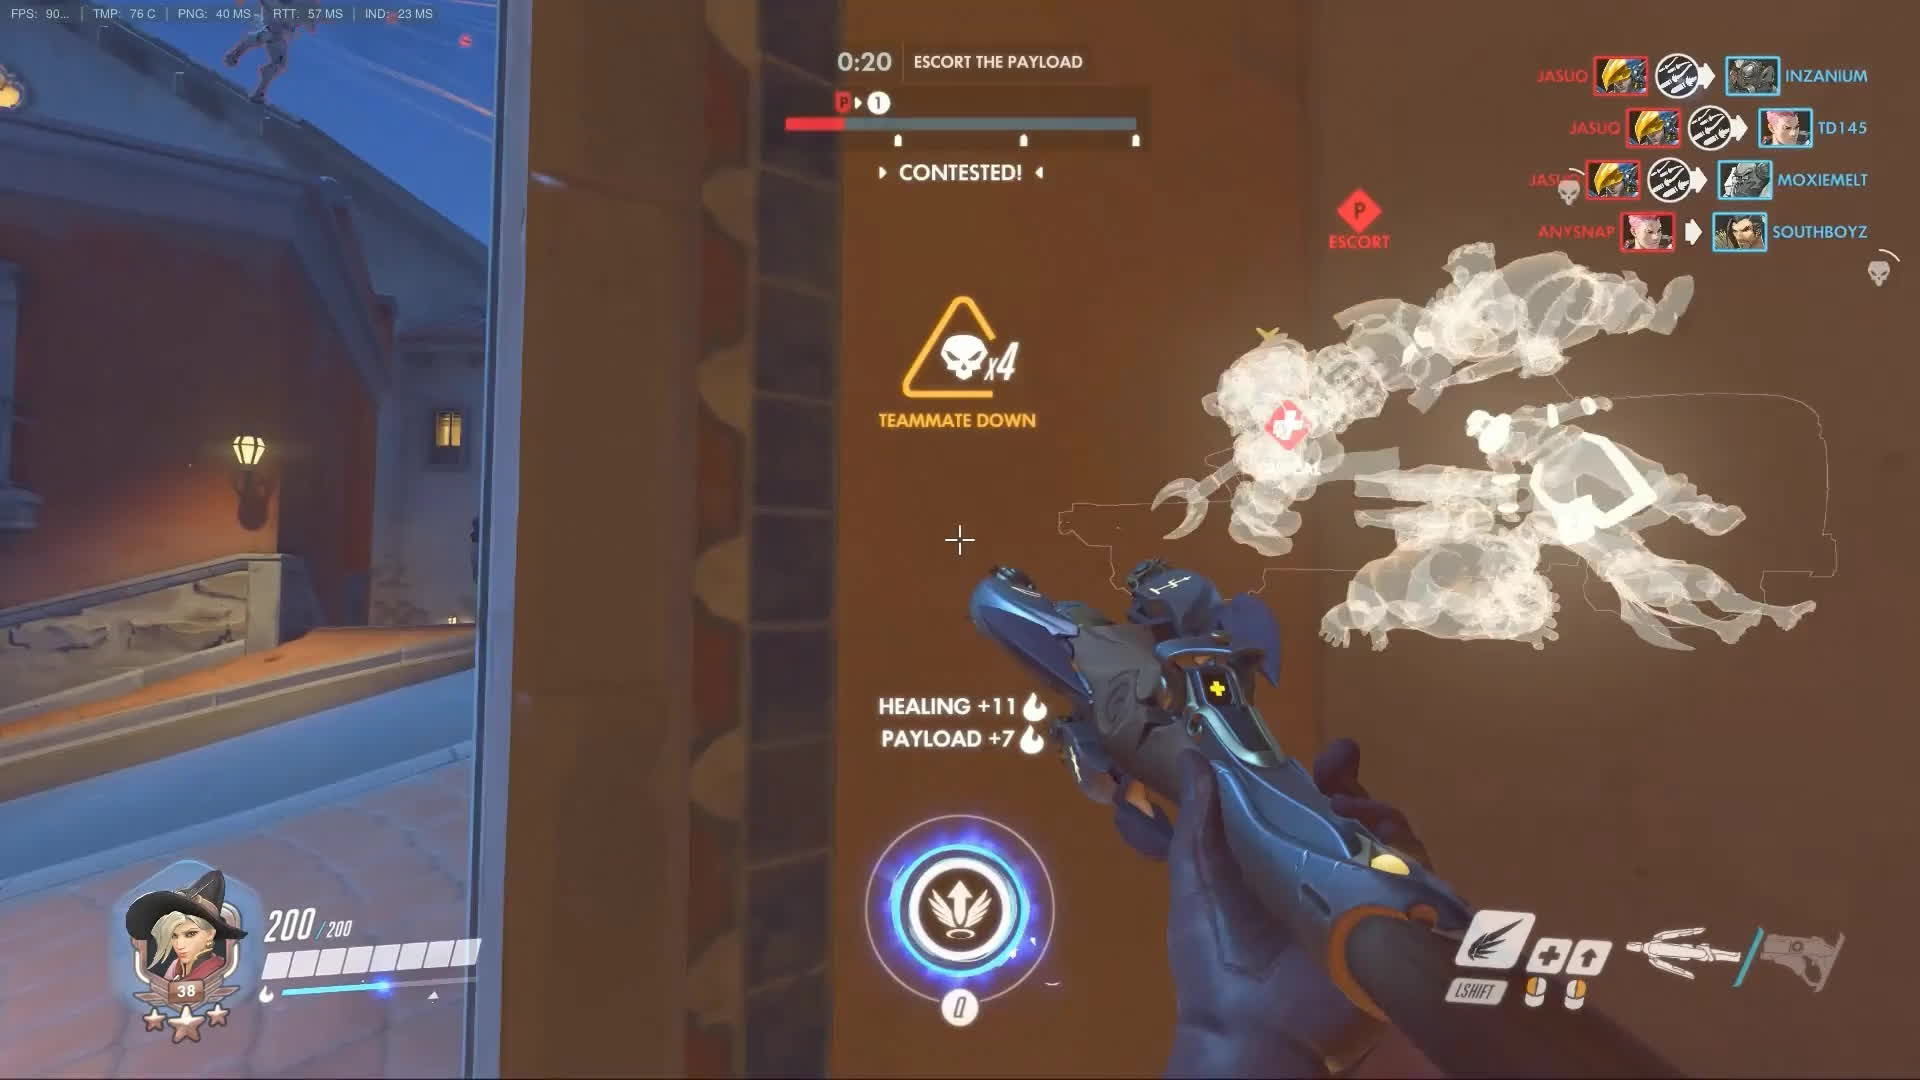 I Don't Understand POTG GIFs